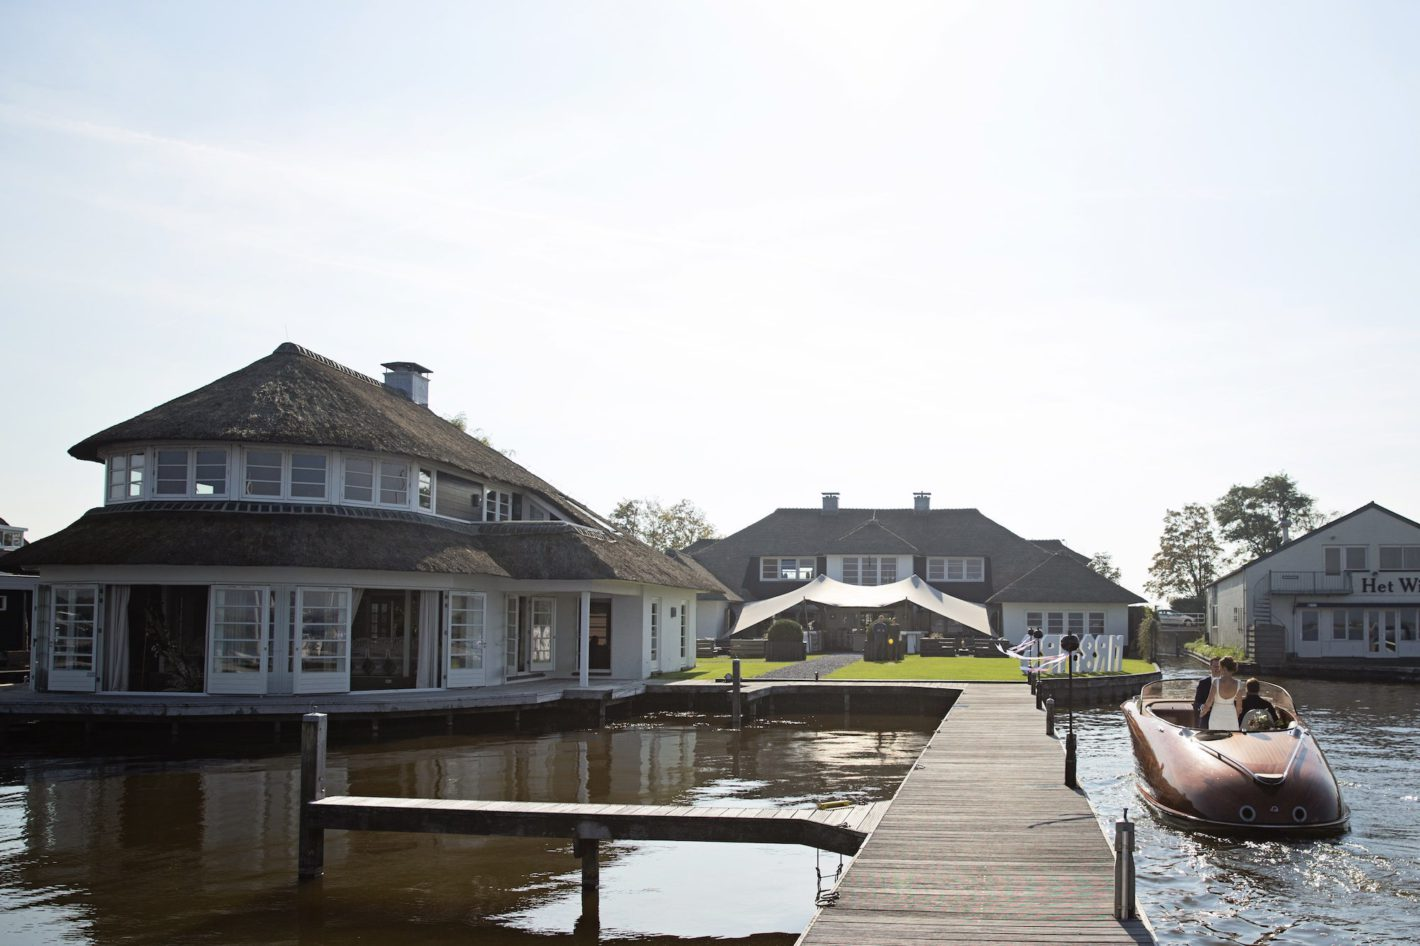 Getting married near the water: Finley het Witte Huis